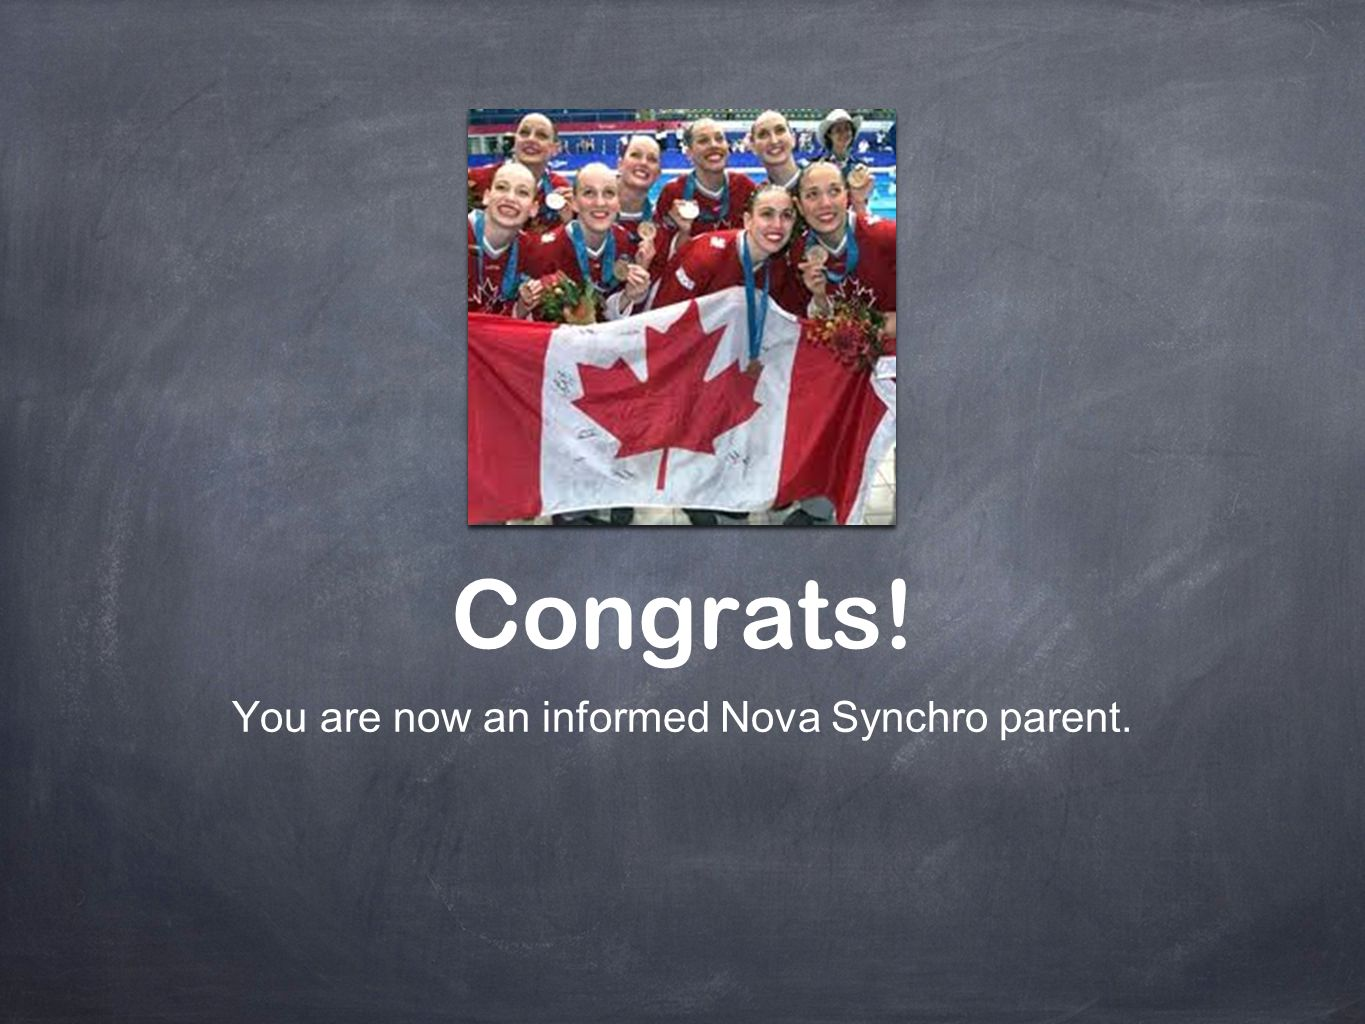 You are now an informed Nova Synchro parent.